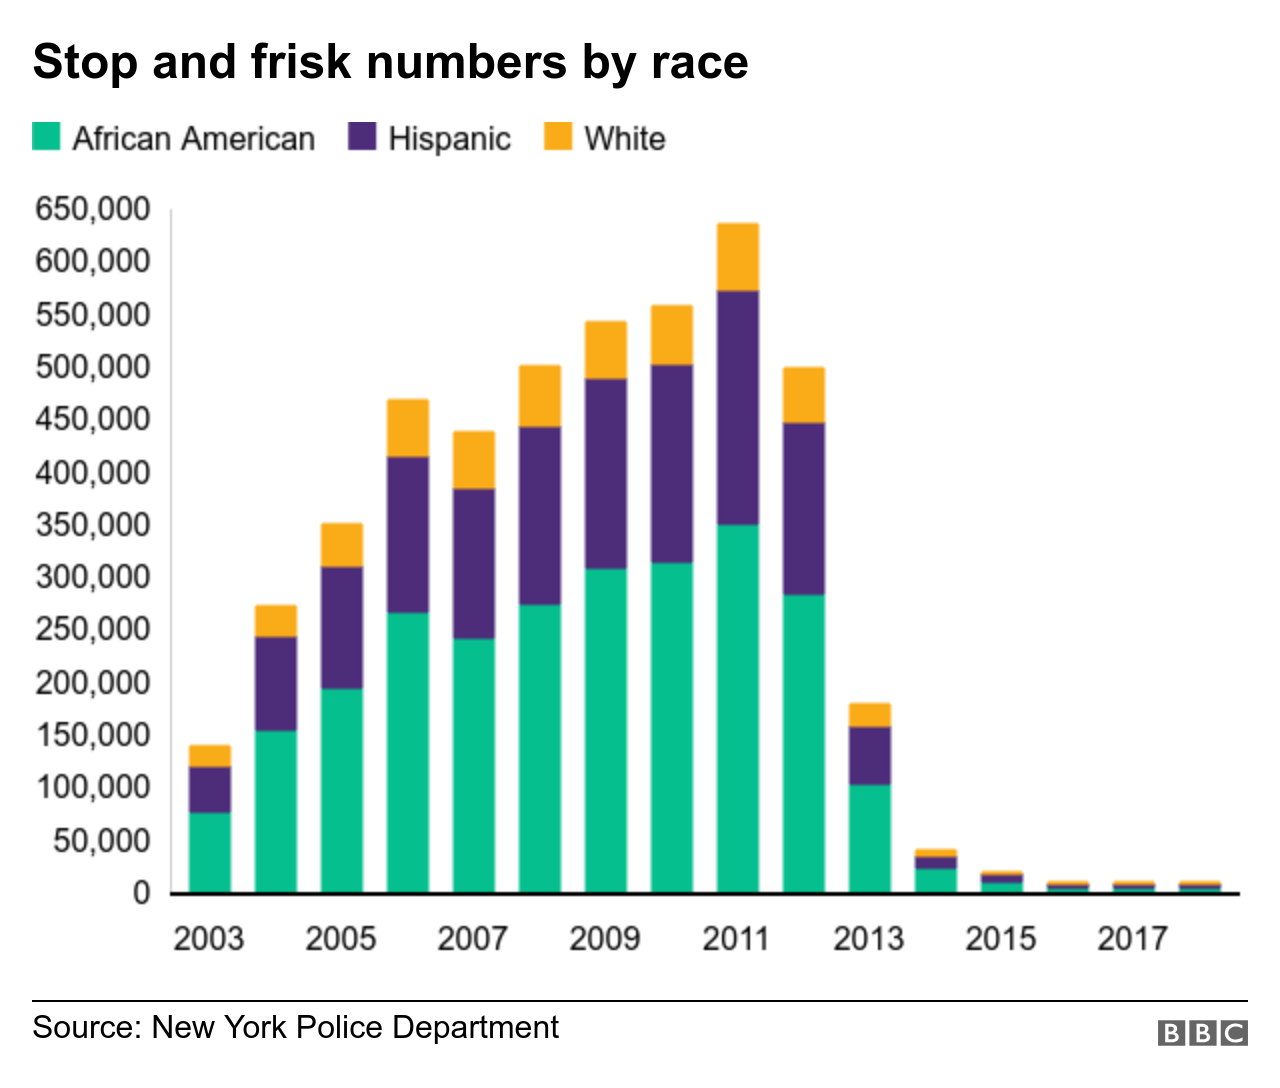 Stop and frisk numbers by race